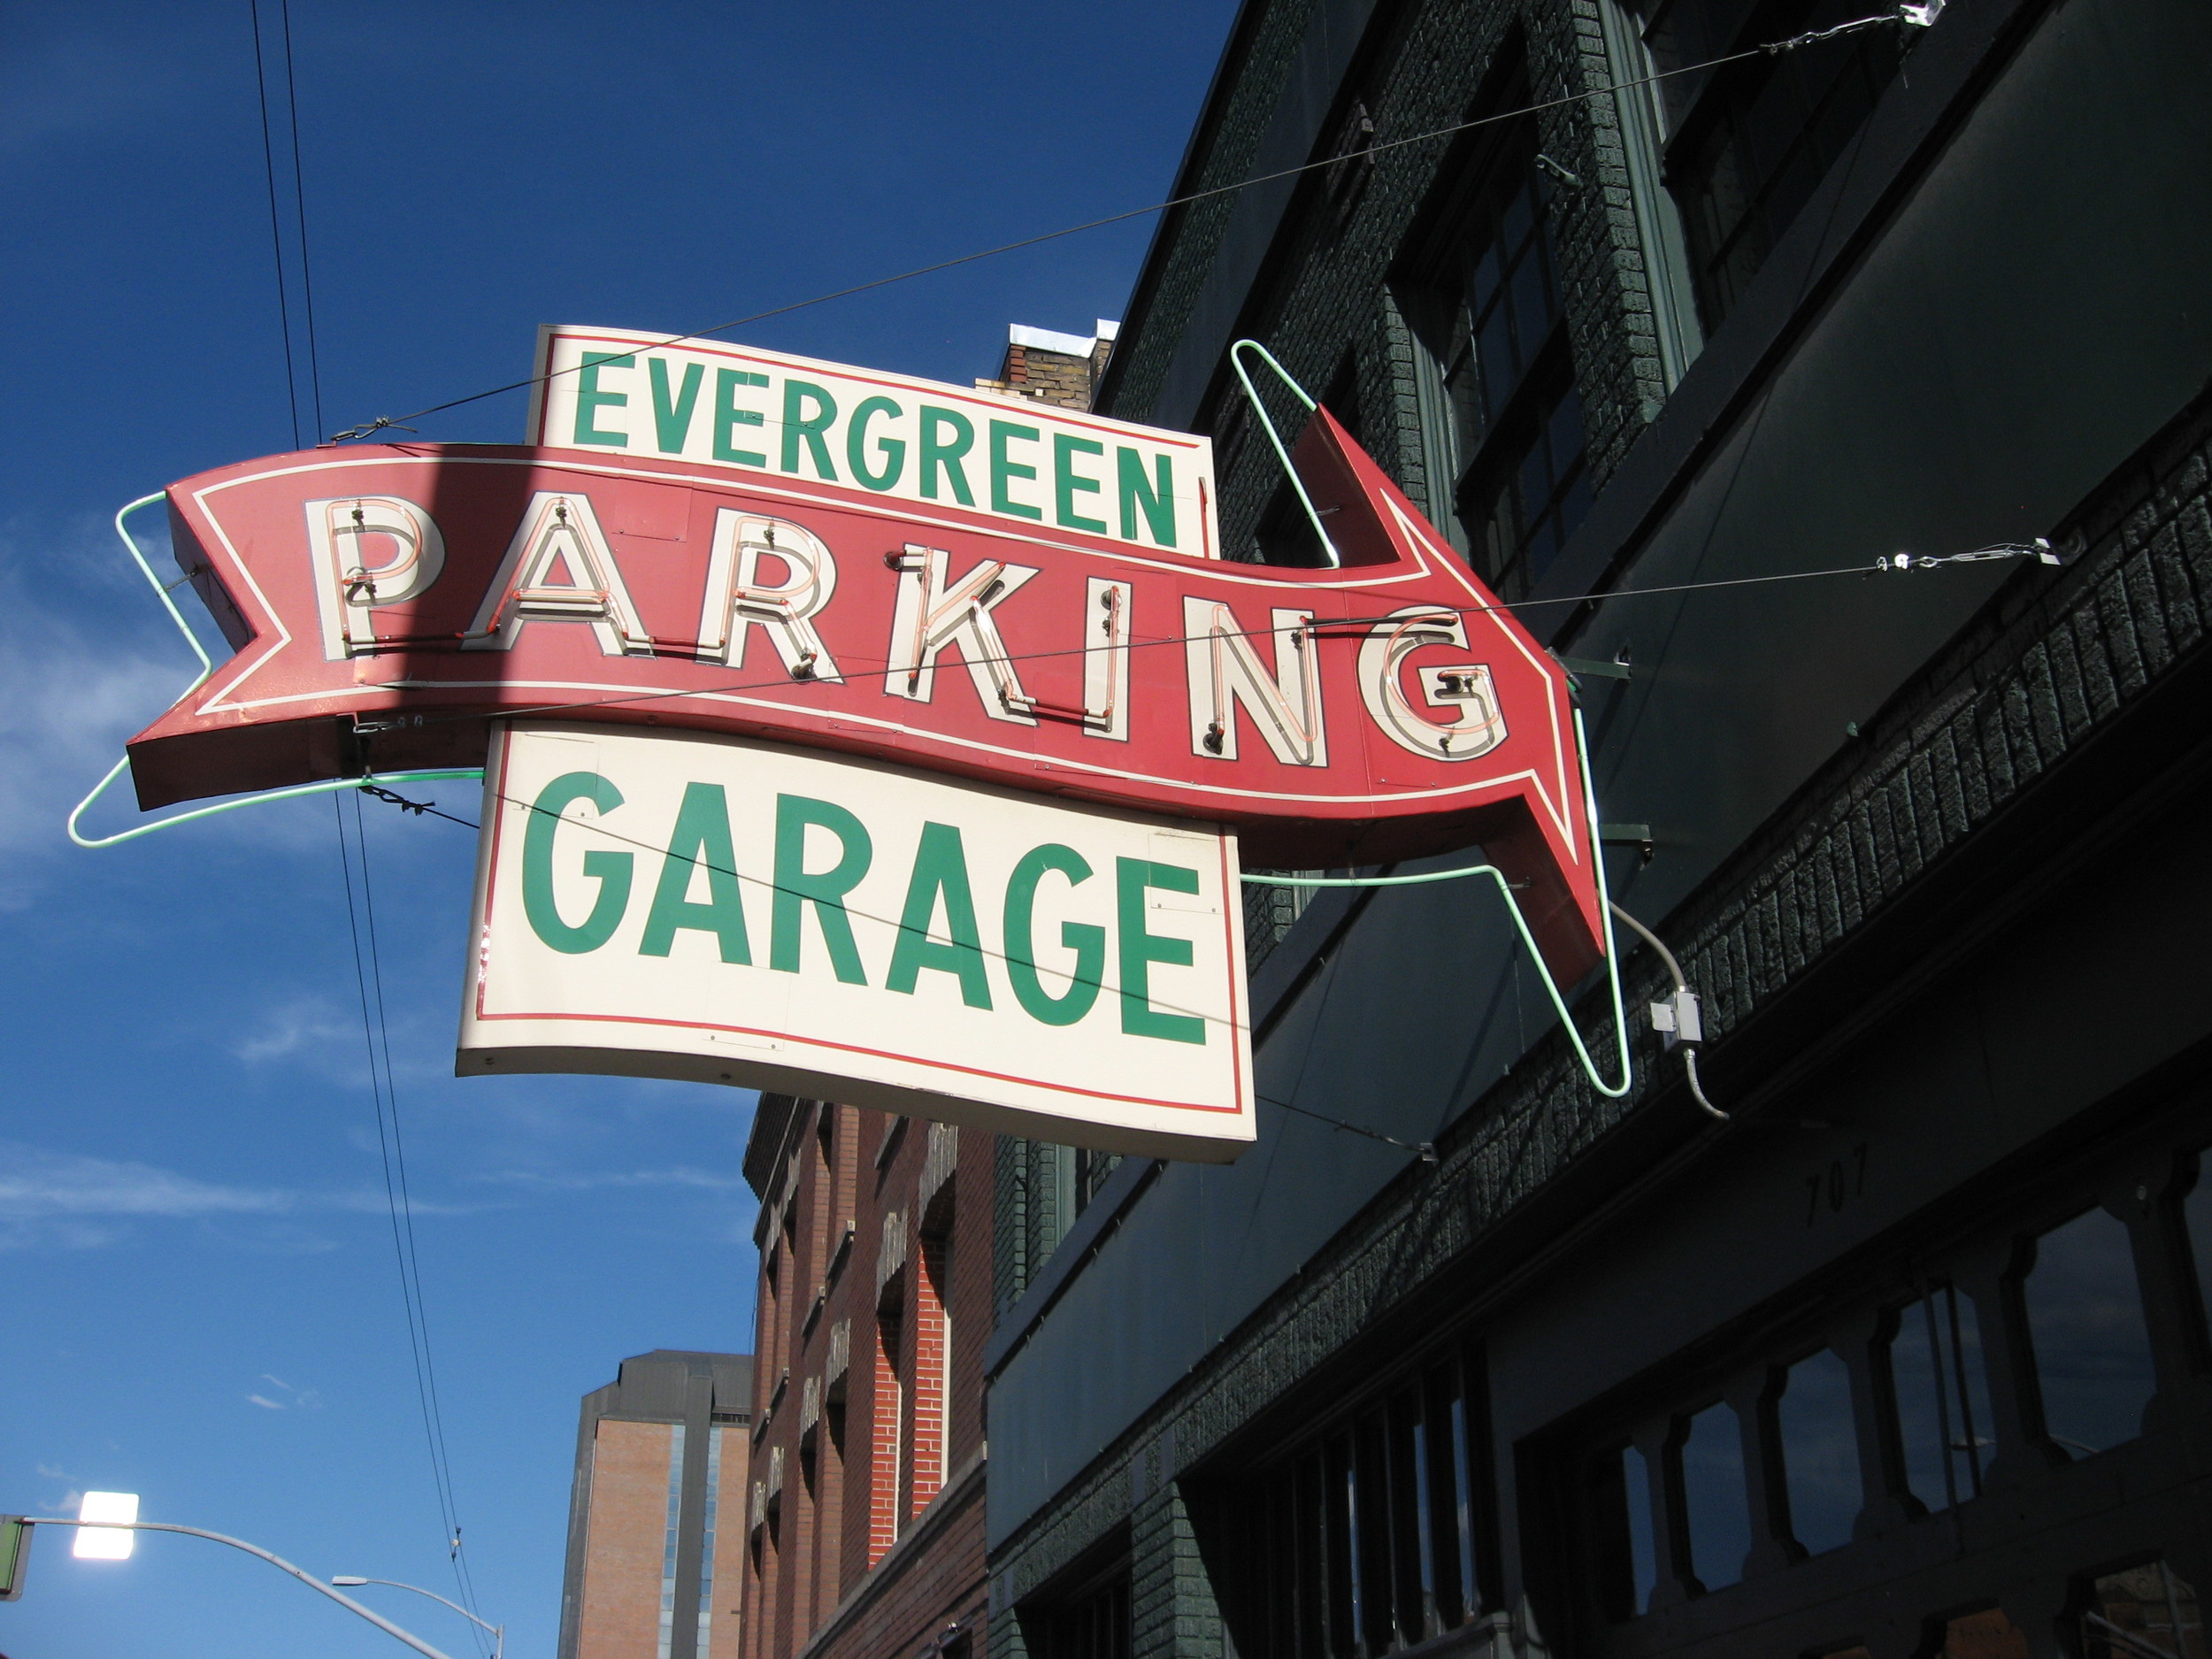 To me this is the perfect parking garage sign. It is easy to see from a distance day or night and it is whimsical. We need to bring back more neon signs!